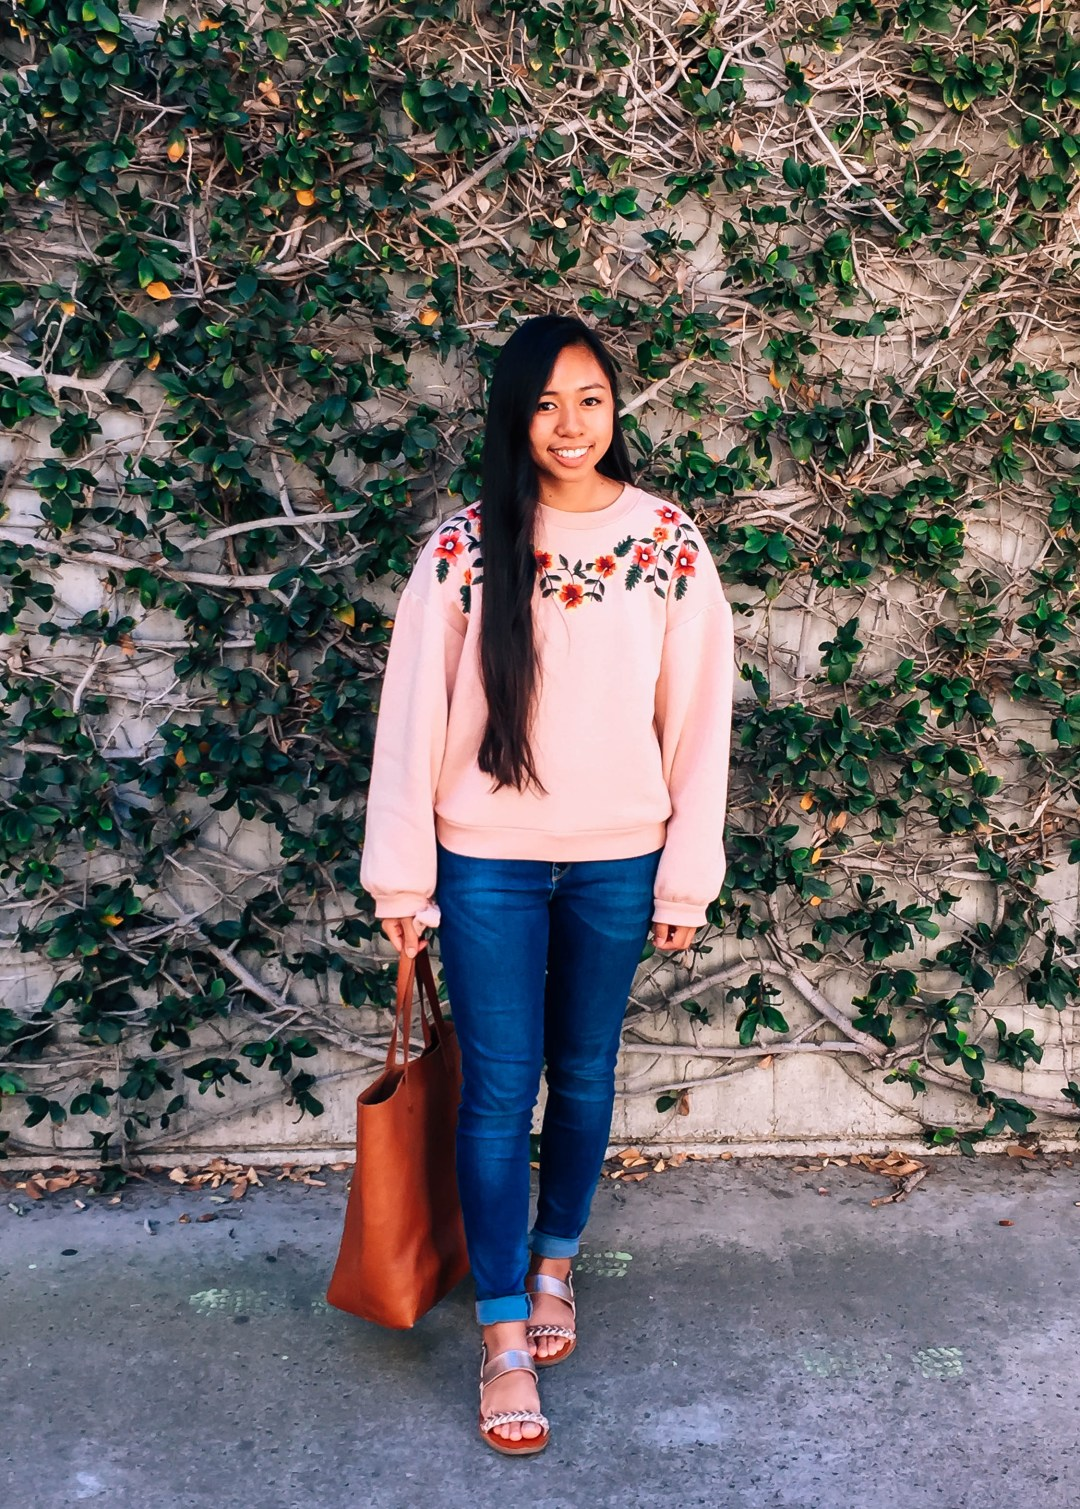 IMG 3423 - What I Wore This Week in College | Spring Outfits for School